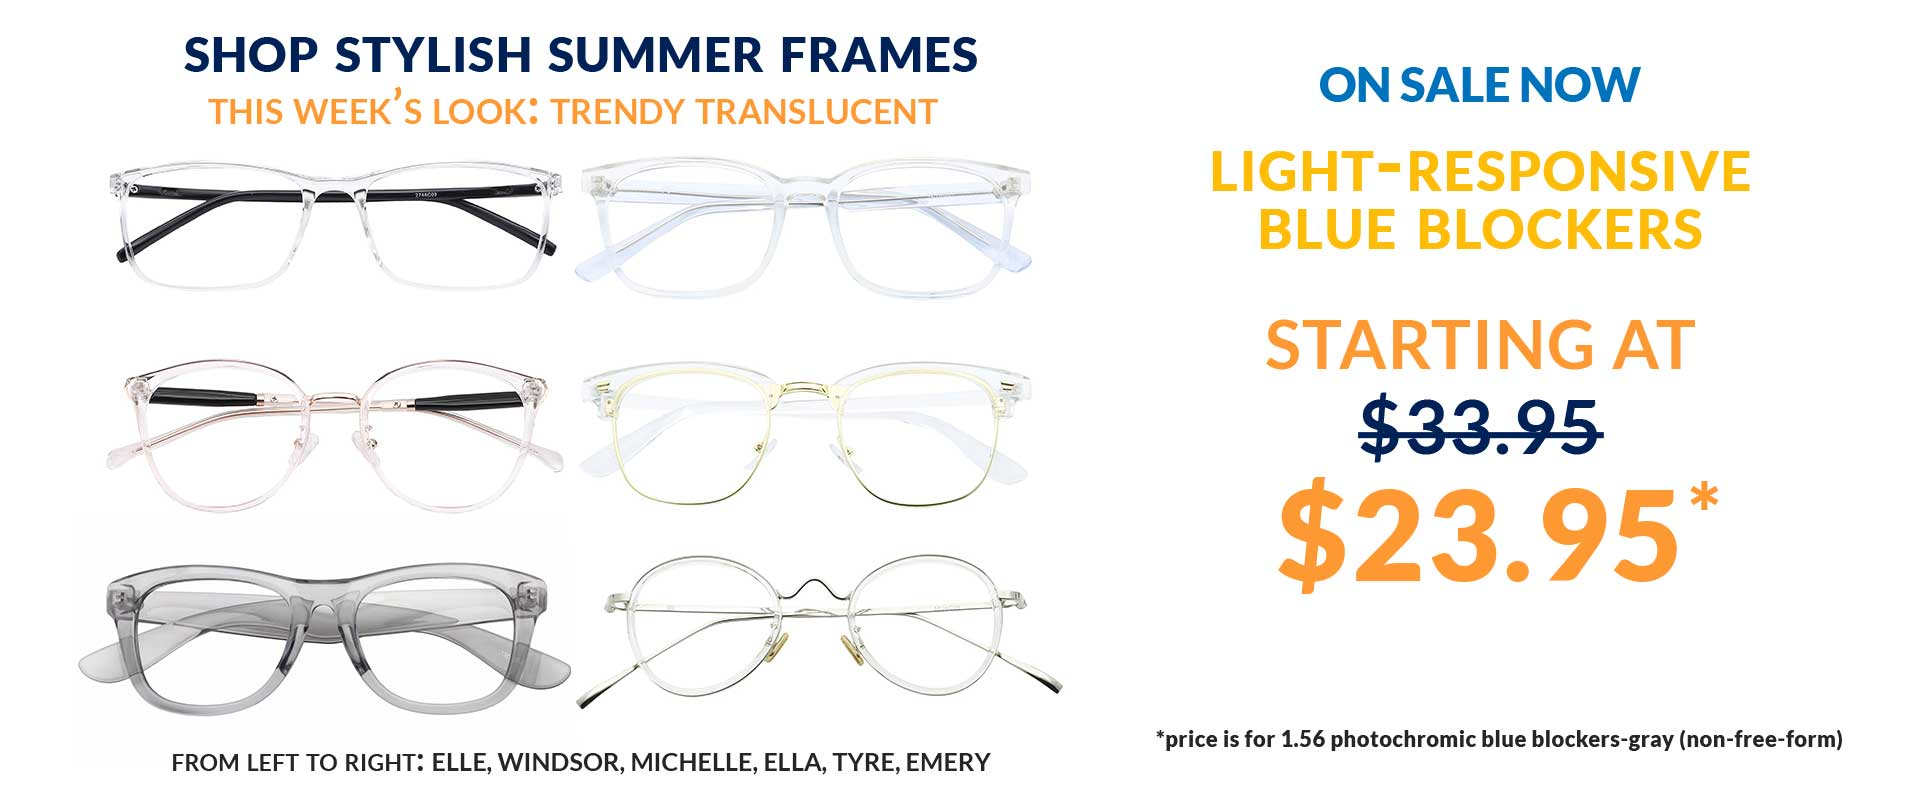 Shop Stylish Summer Frames; This Week's Look:Trendy Translucent.